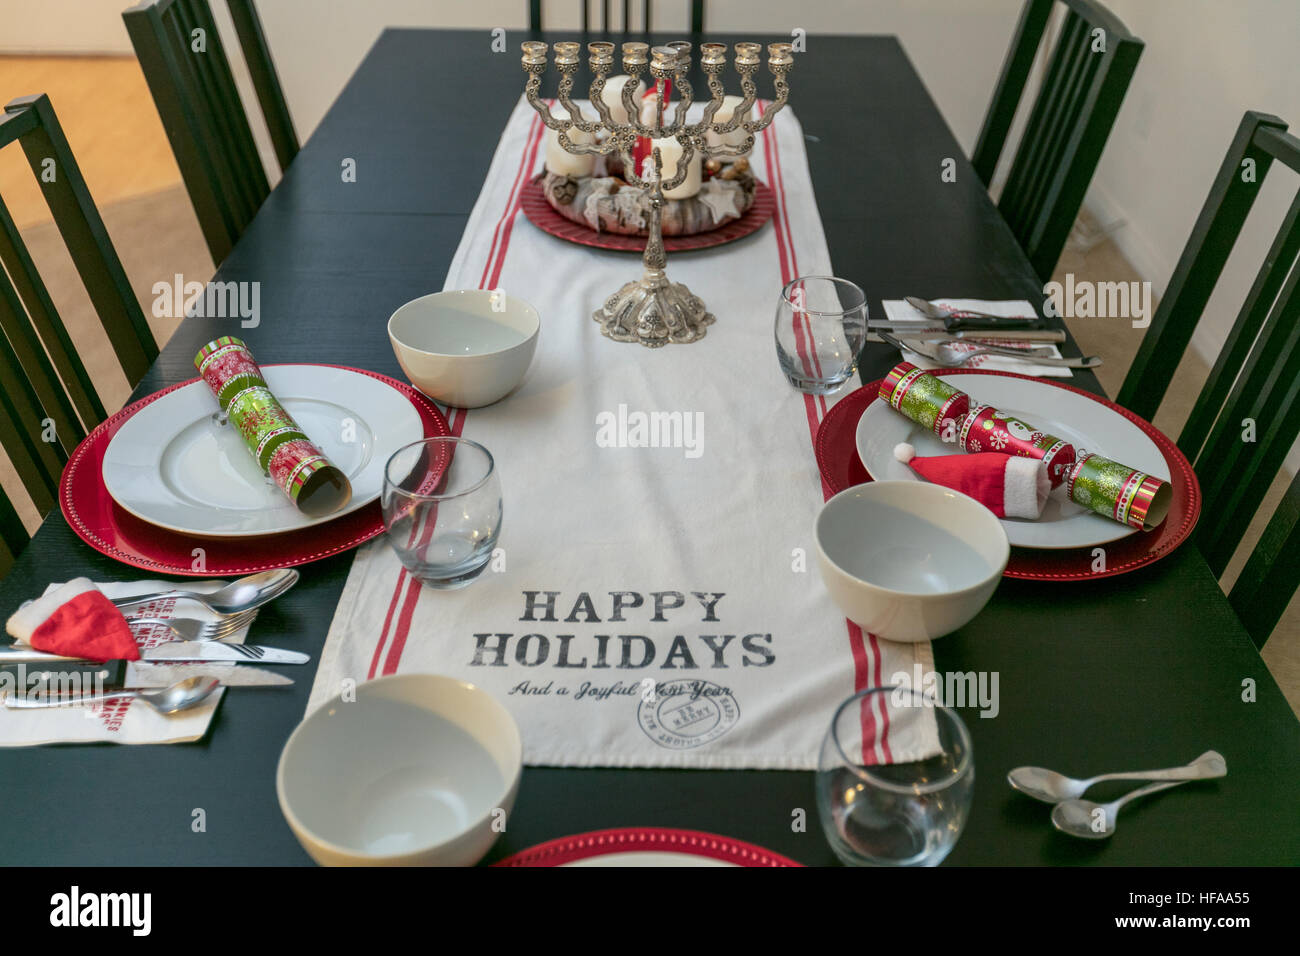 Celebrating Christmas and Hannukah. Decorated Christmas dinner table with a Hannukah Menorah - Stock Image